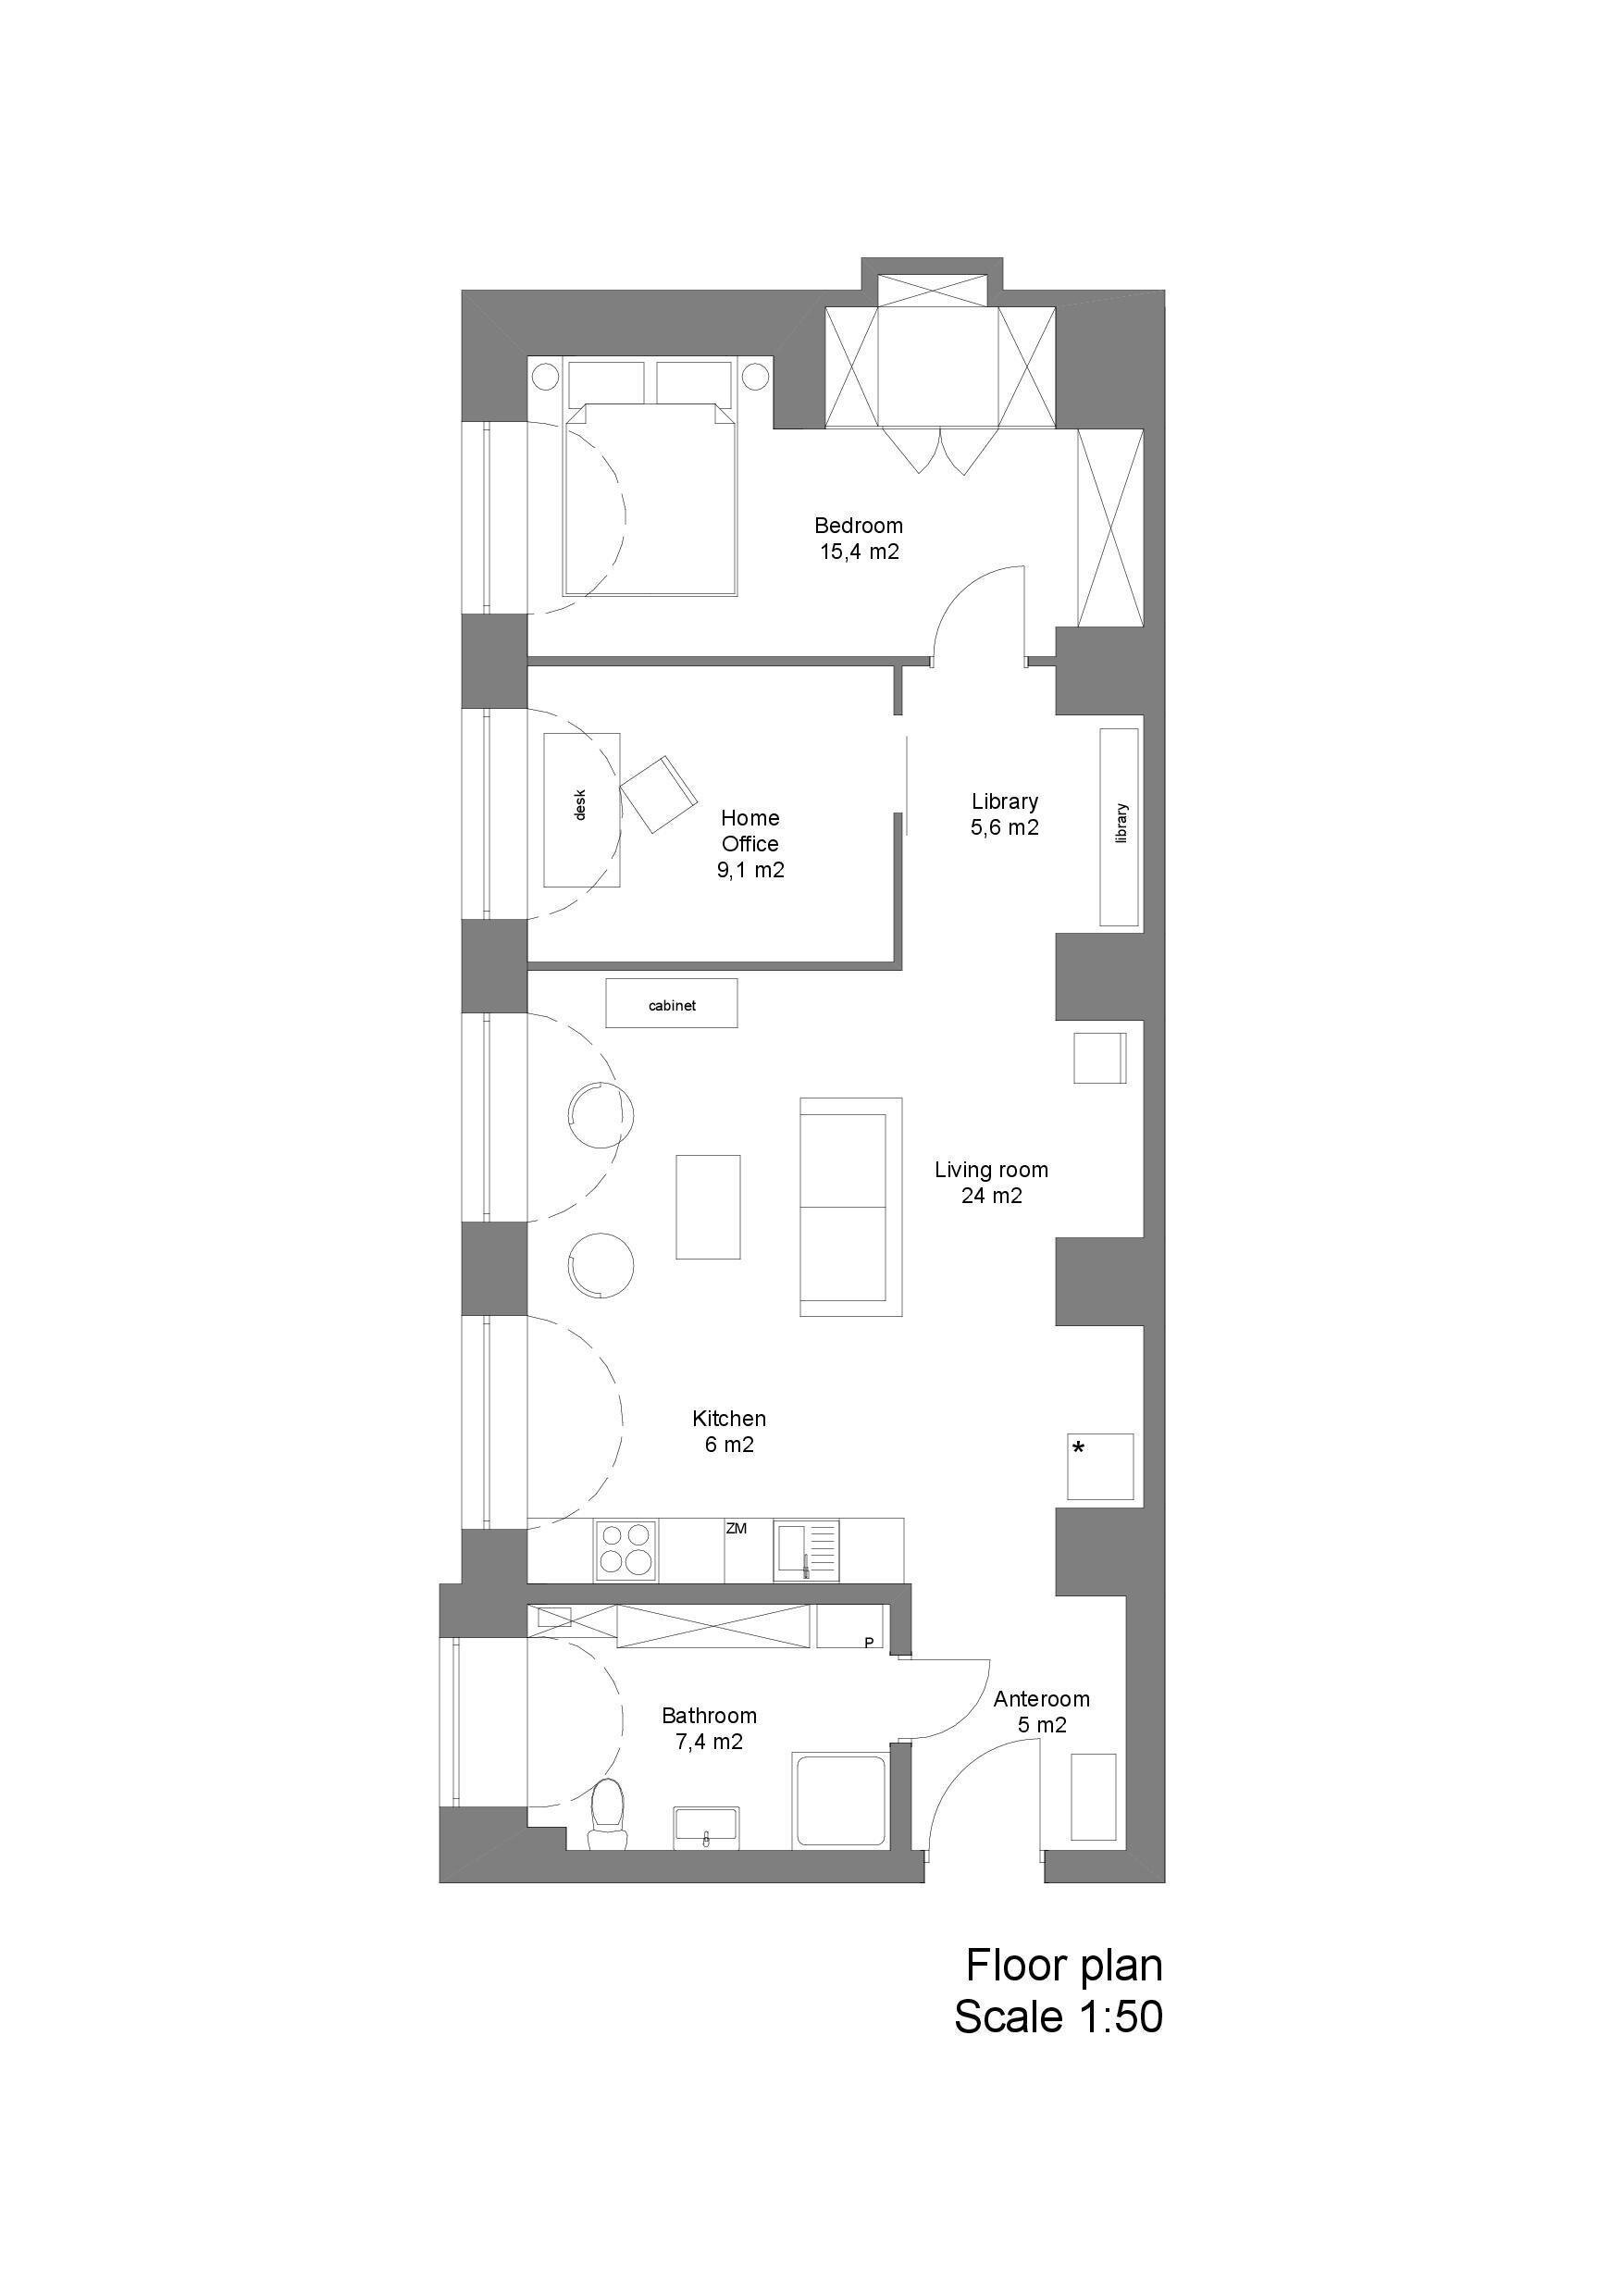 Loft in a Marmalade Factory - Loft Szczecin - Poland - Floor Plan - Humble Homes